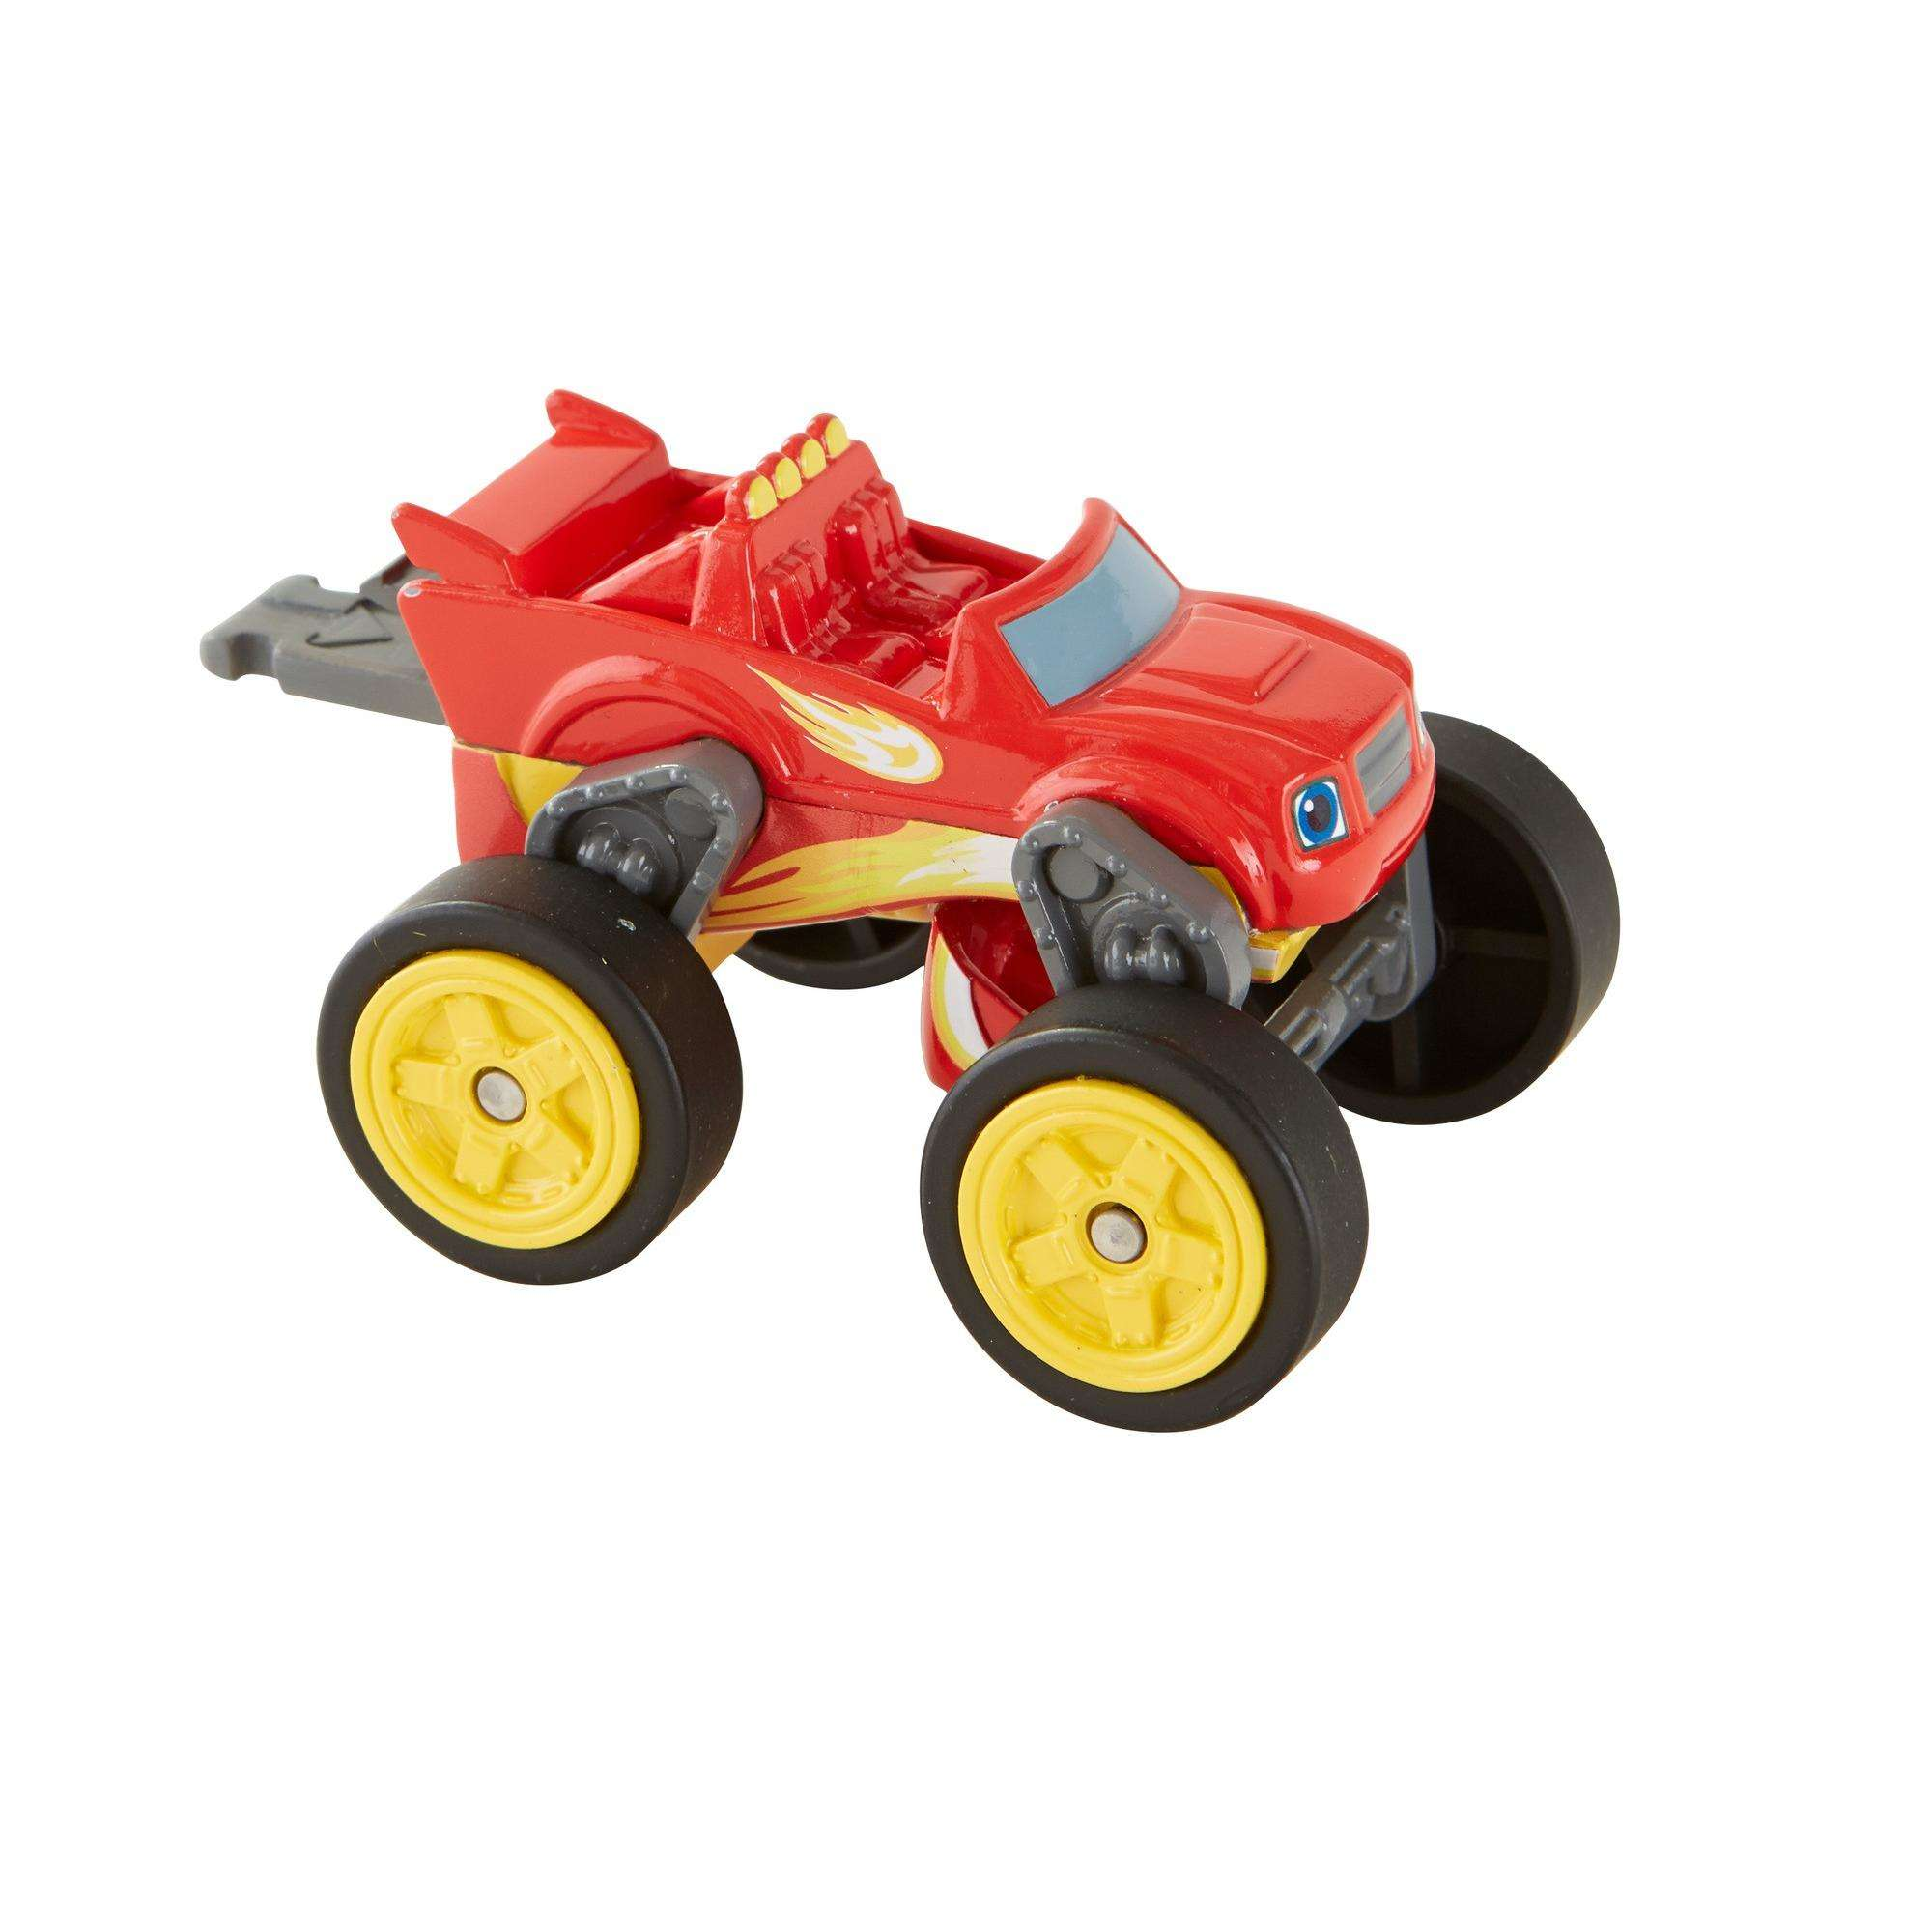 Fisher Price Nickelodeon Blaze And The Monster Machines Flip & Race Blaze by FISHER PRICE